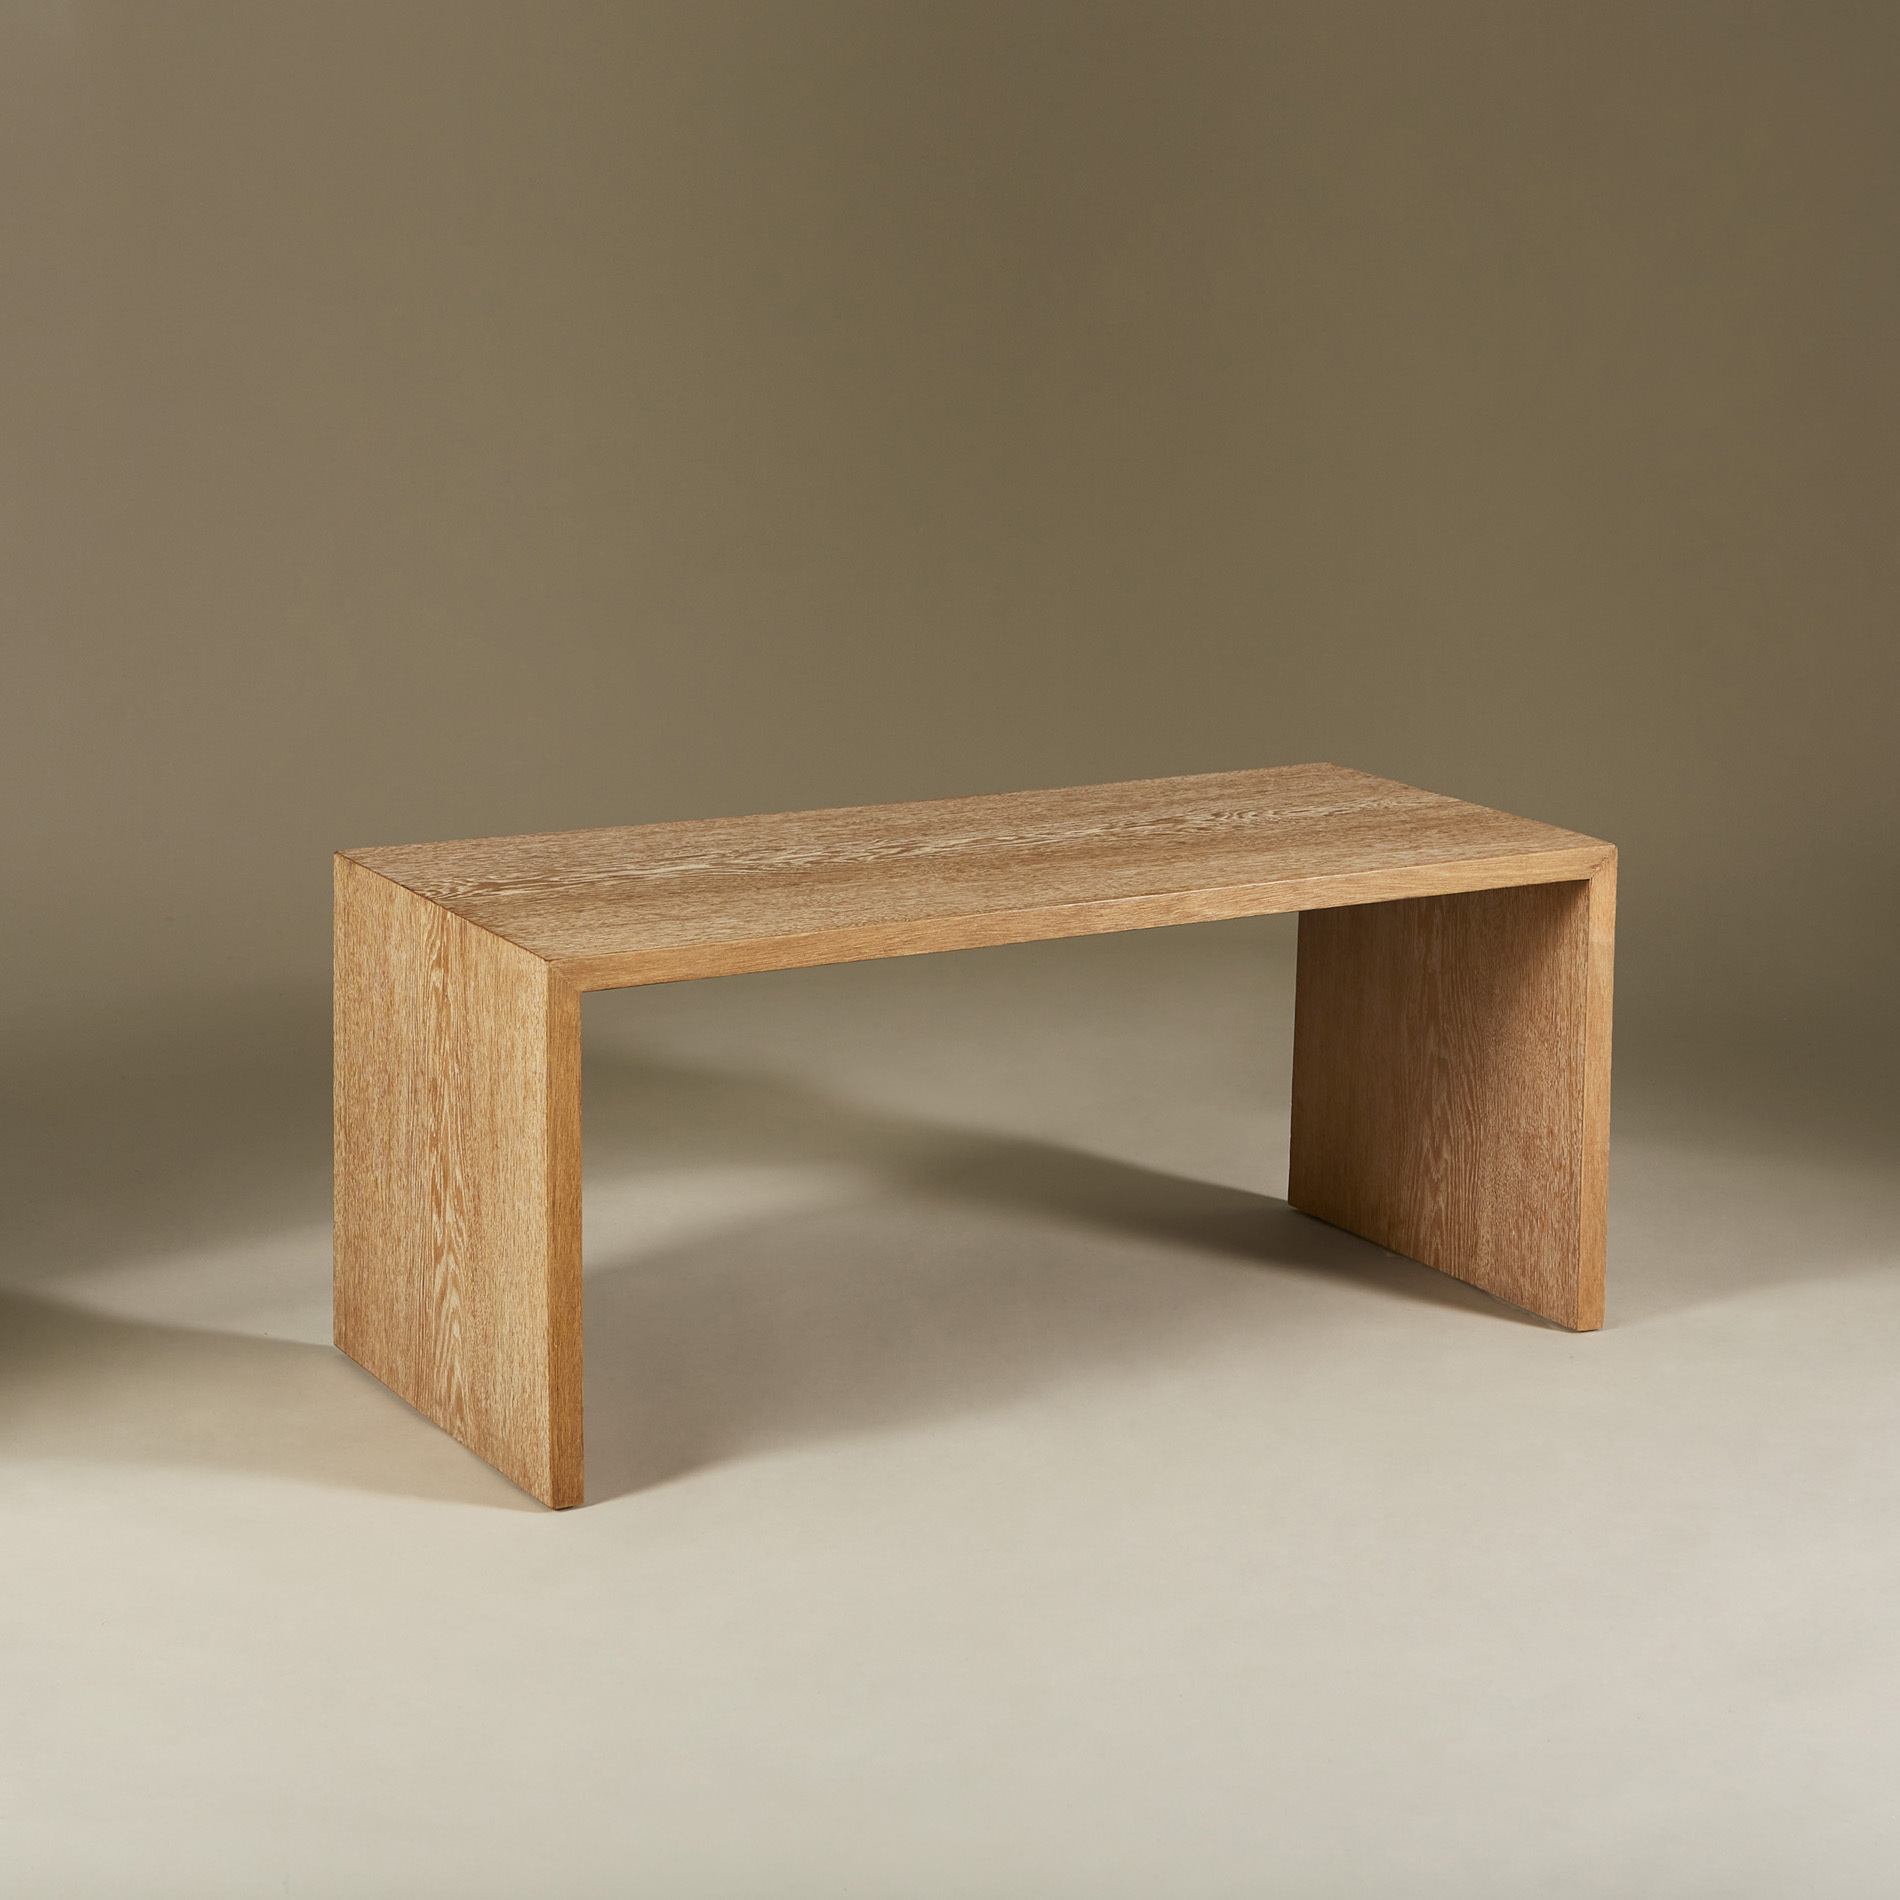 The image for Jean Michel Frank Benches 0109 V1